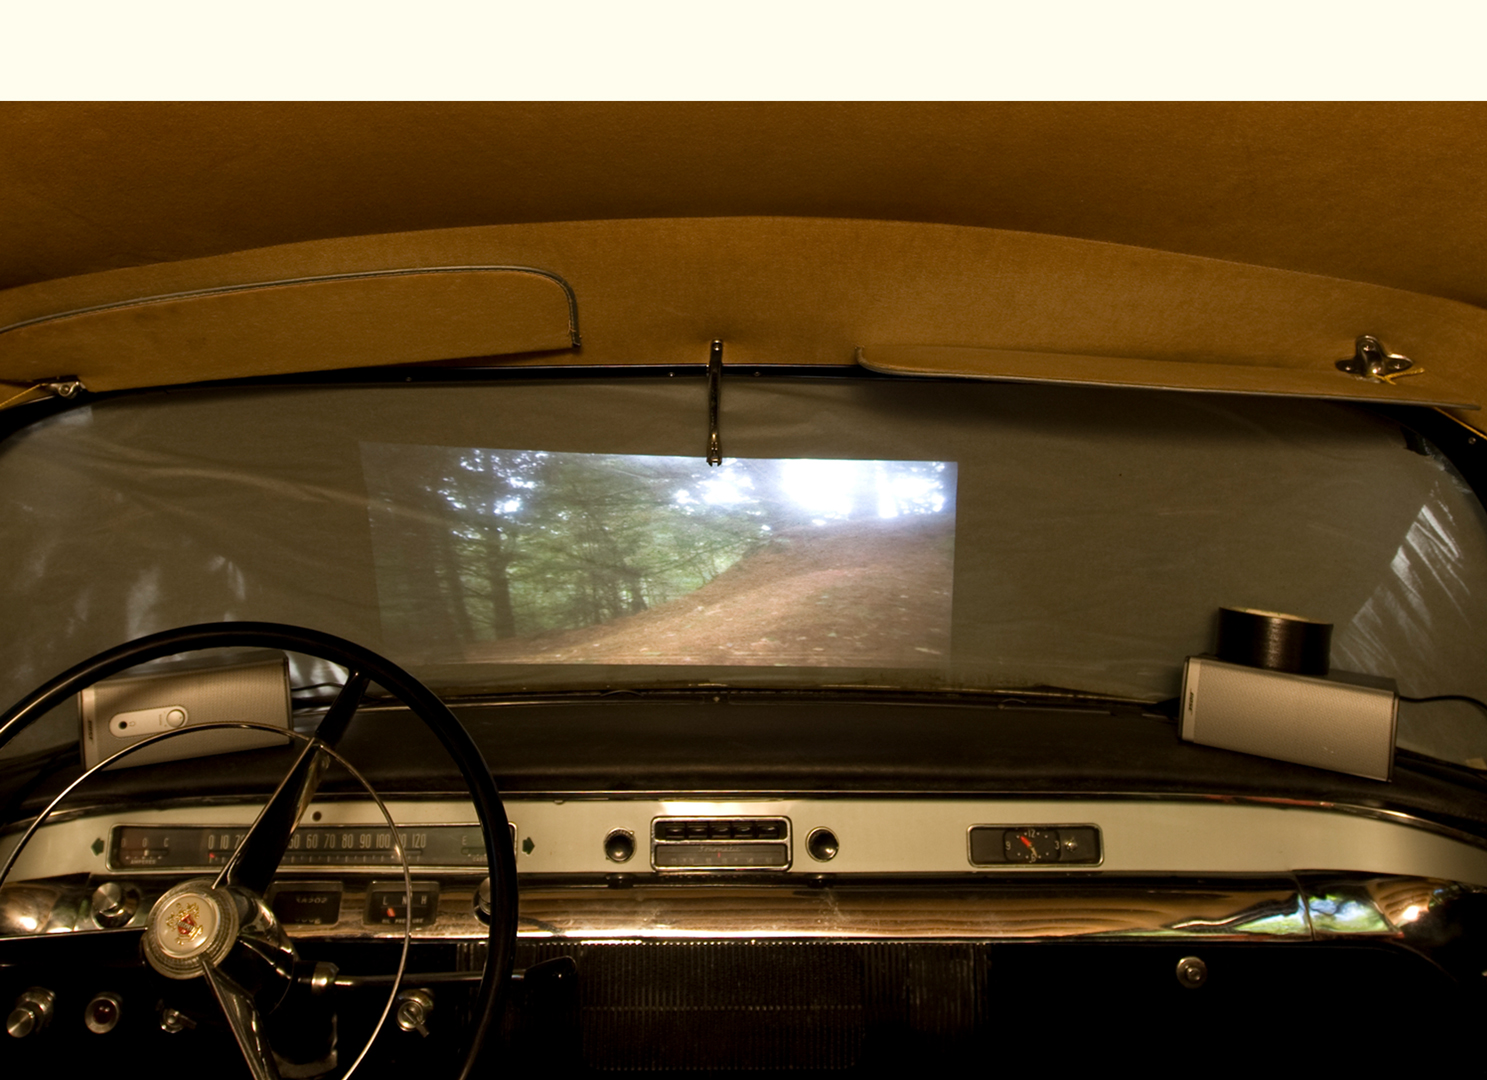 Patrick von Boeckel, Objects may seem closer than they appear (Drive-in movie installation in 1954 Buick), 2009